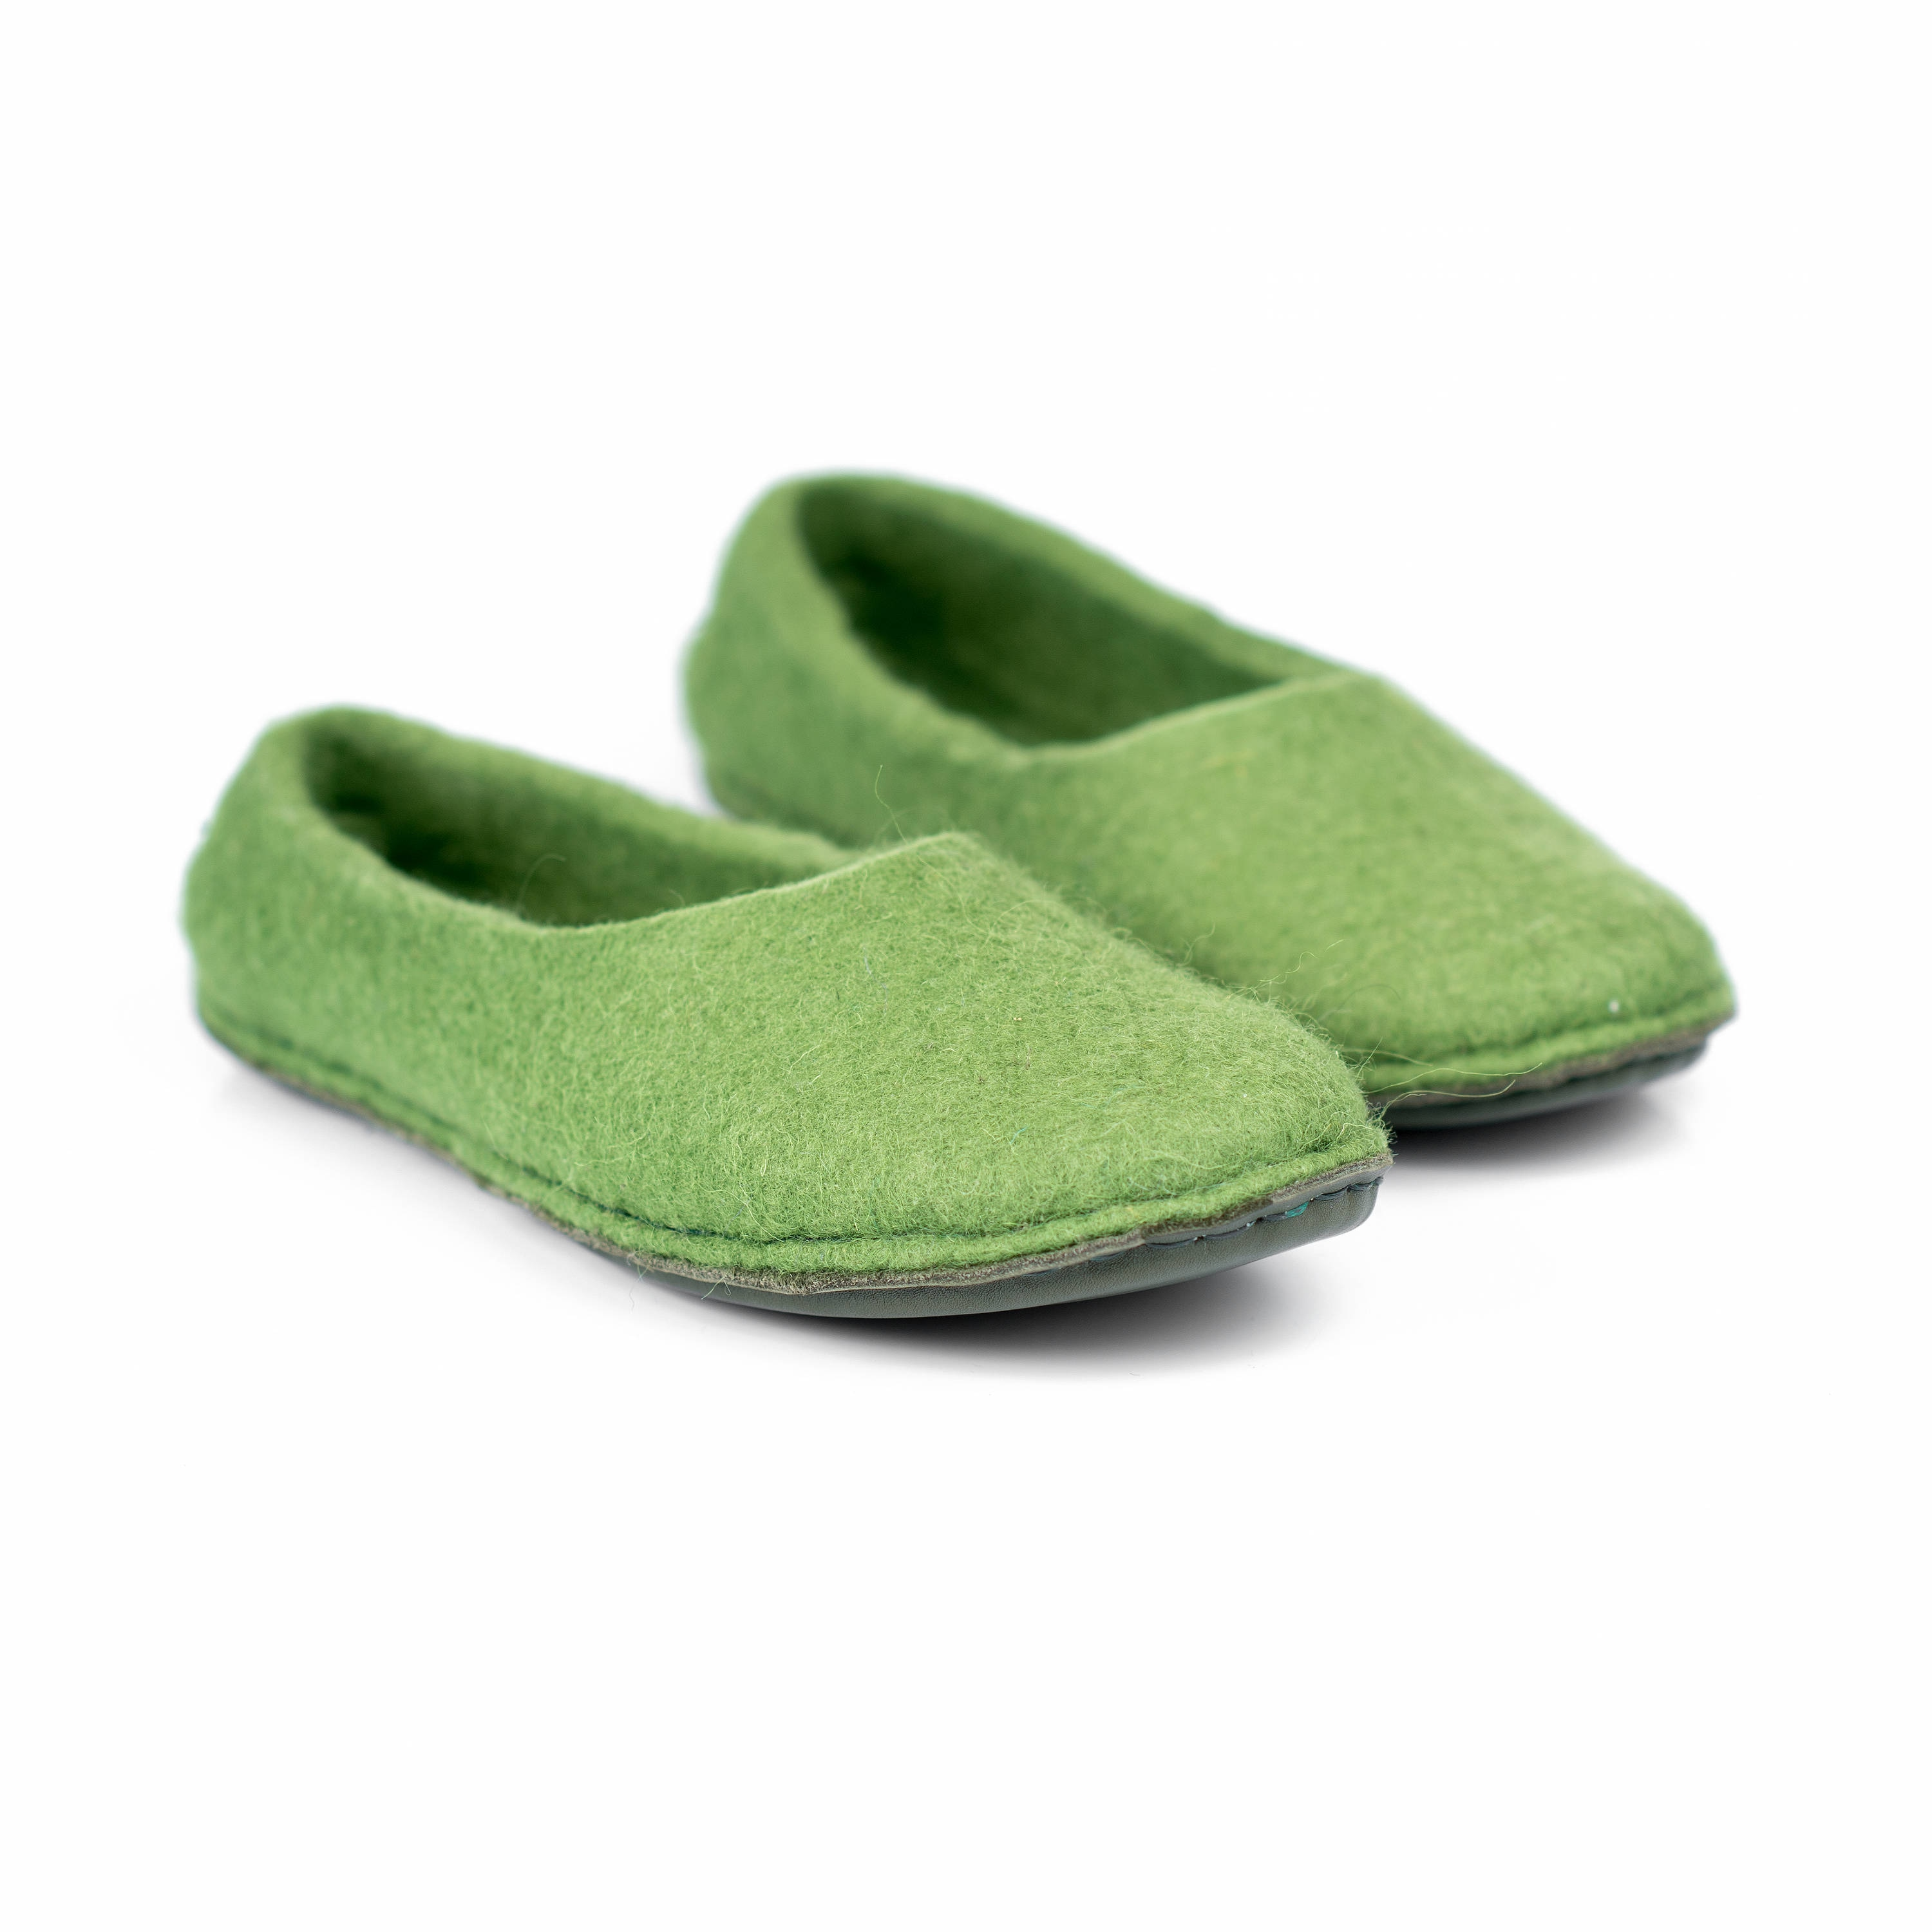 07206d56f Olive green women wool slippers, felted wool slippers for women ...